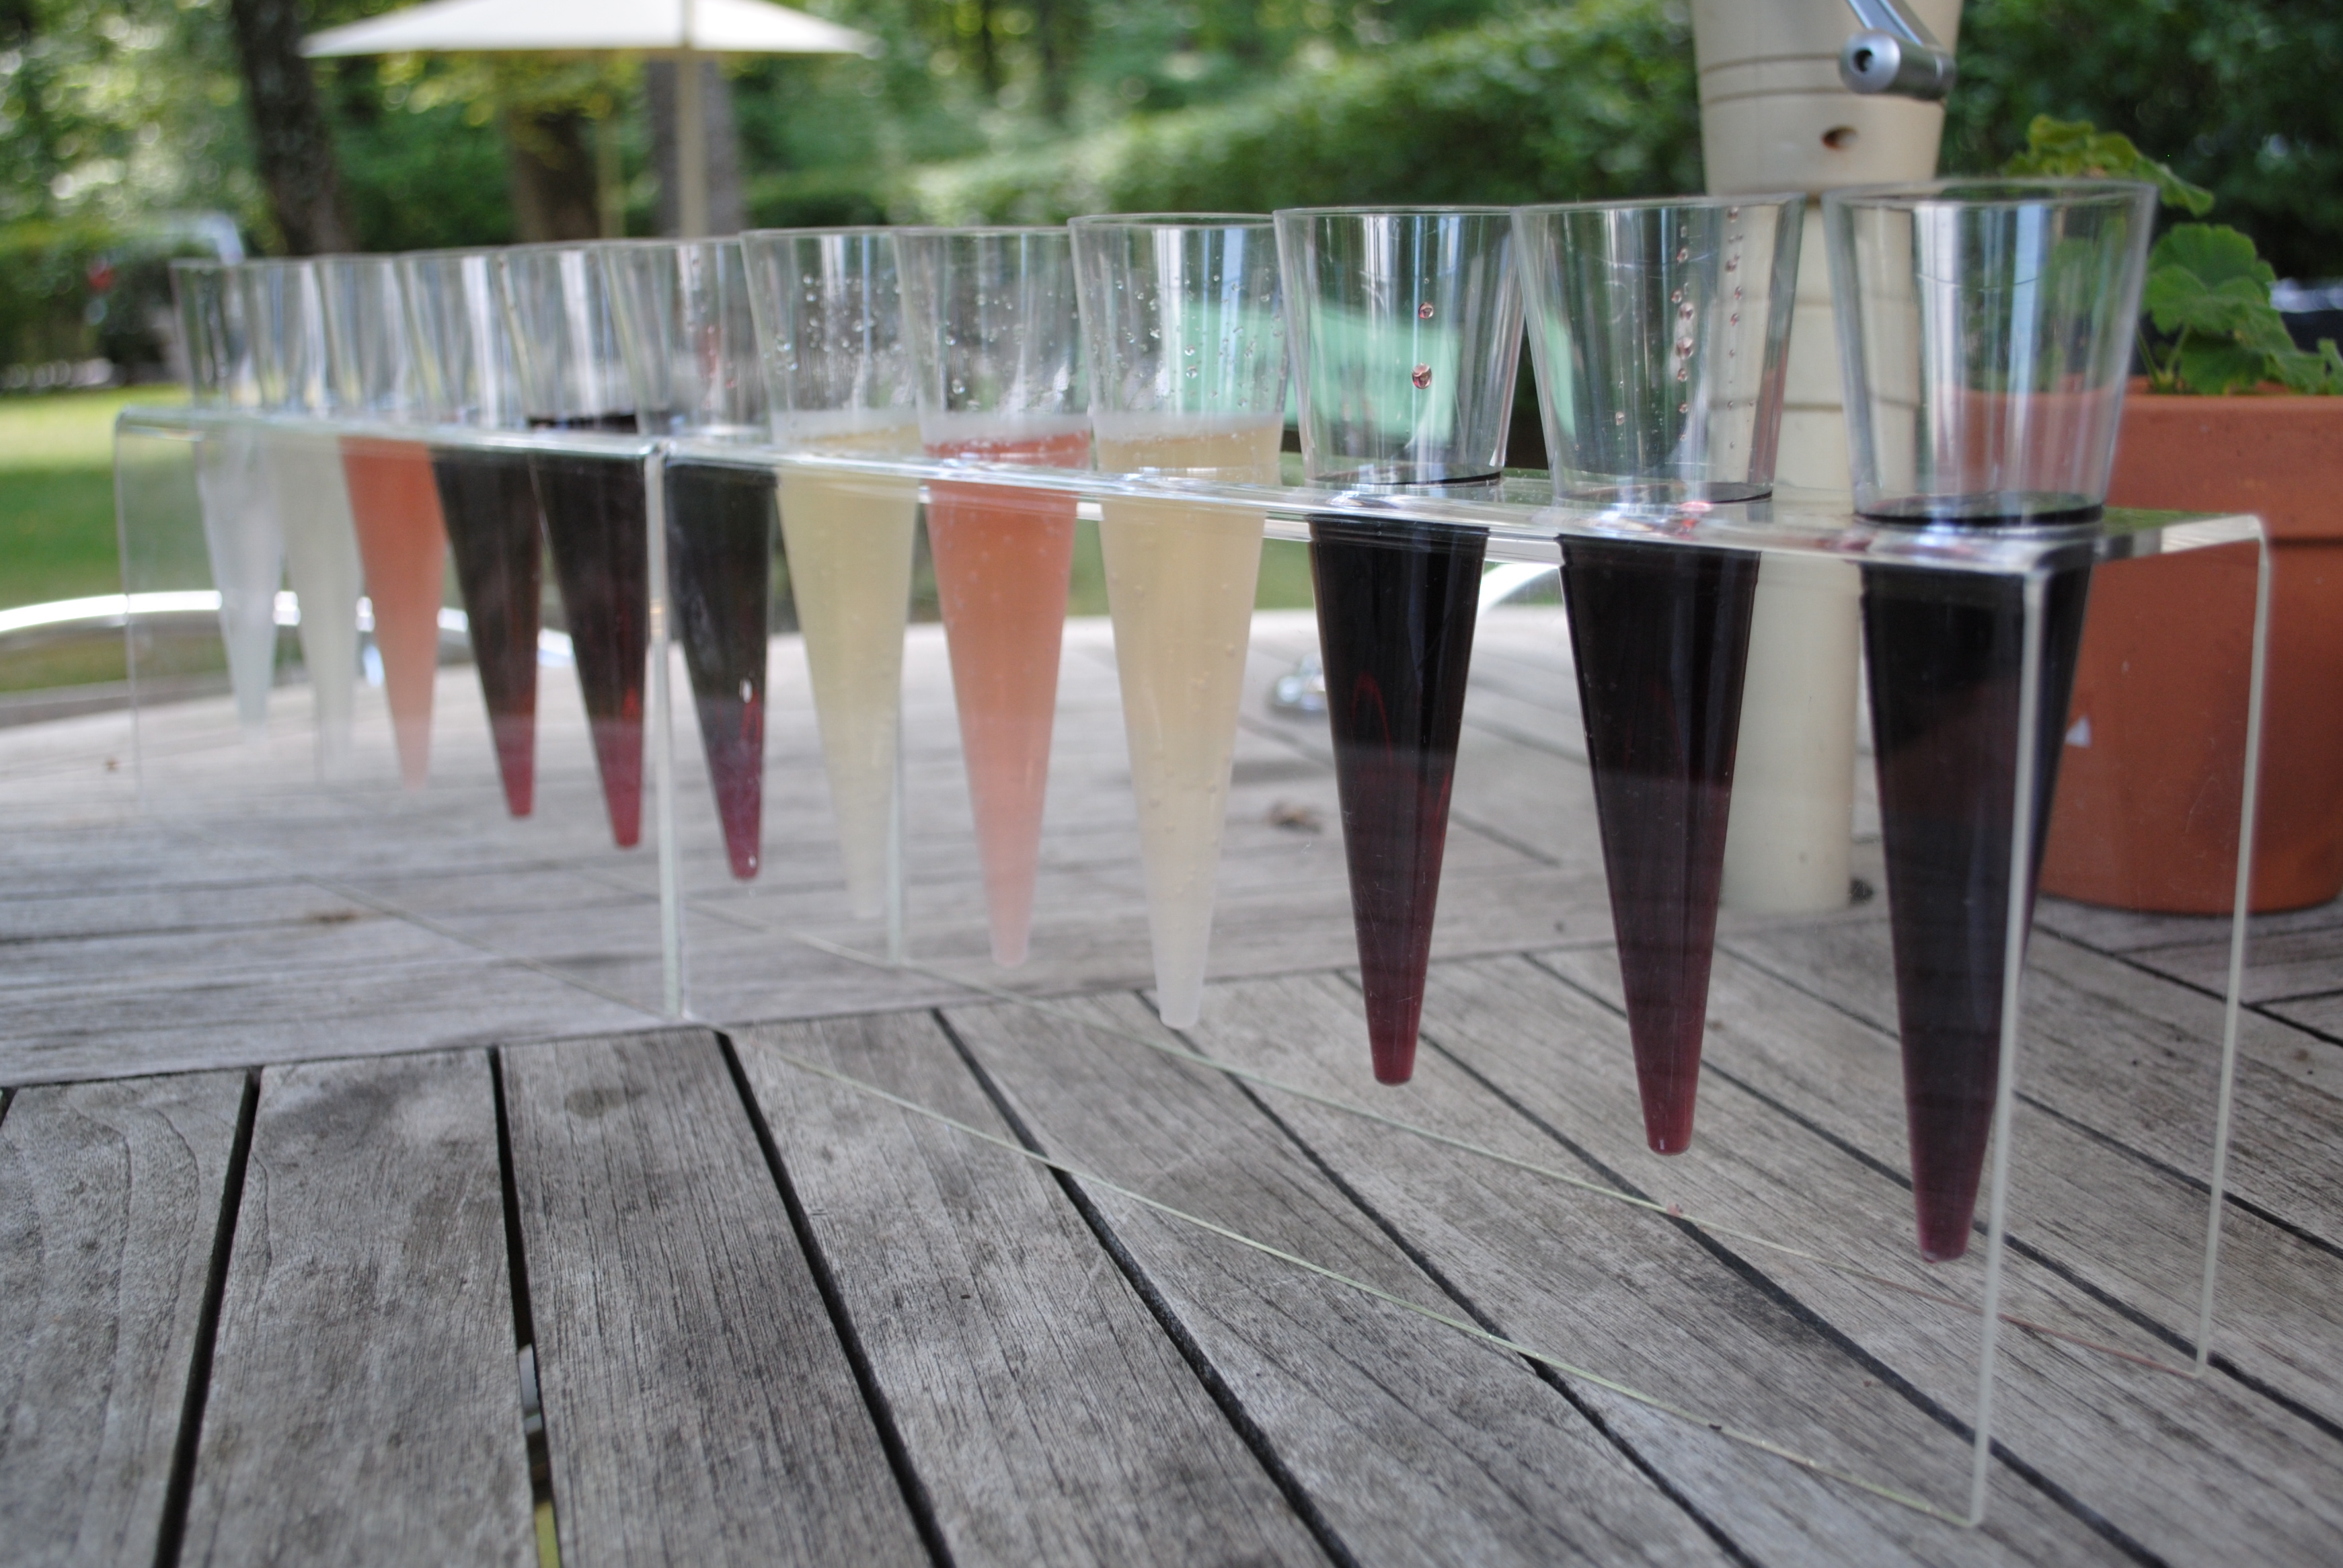 A flight of tastings at Kluge Vineyard